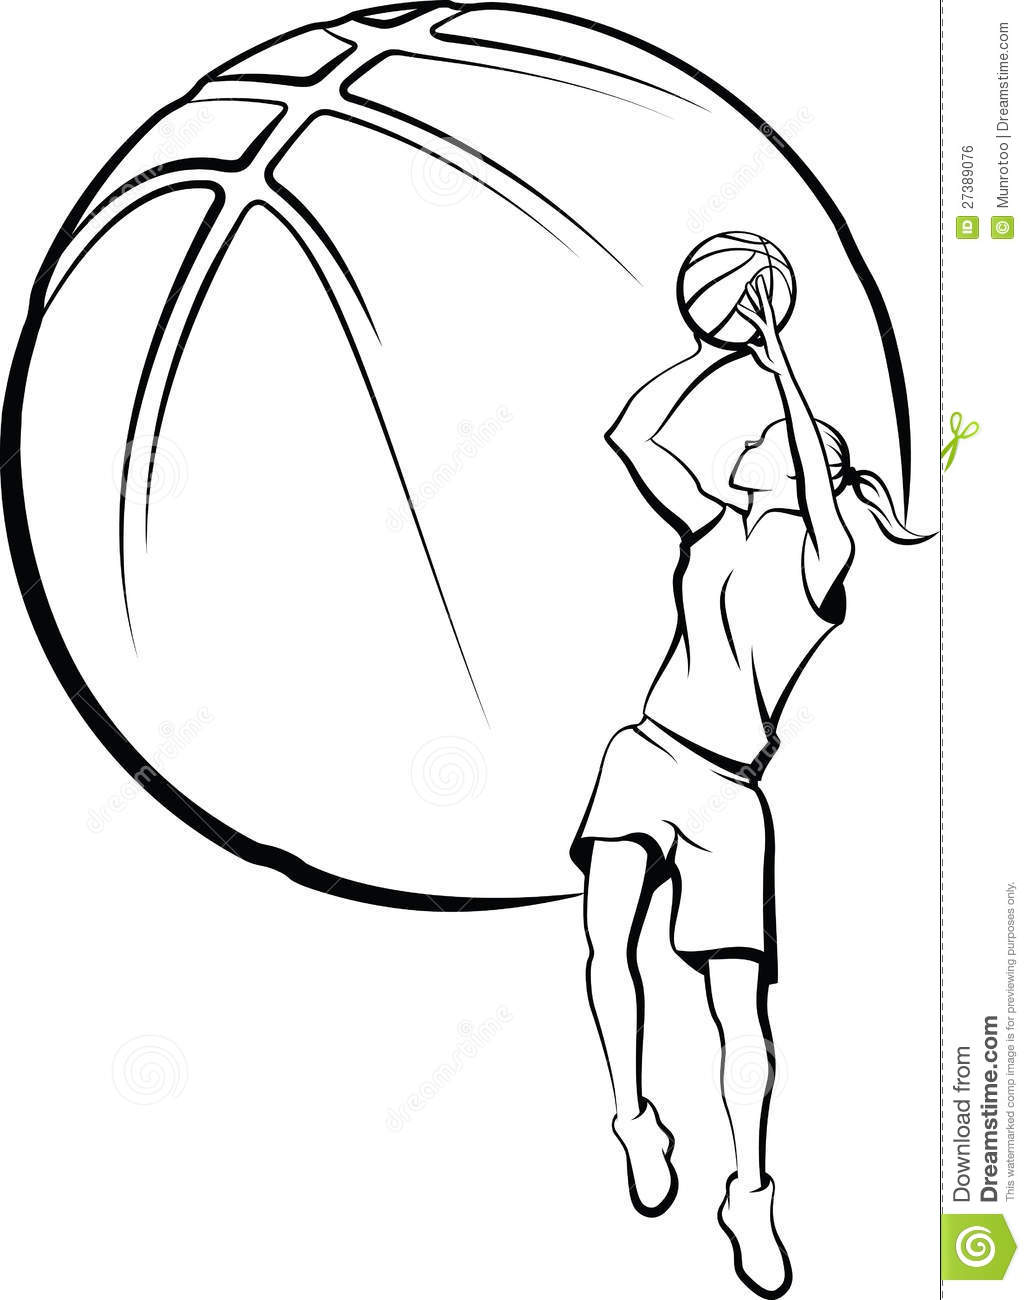 1030x1300 Basketball Black And White Abstract Clipart